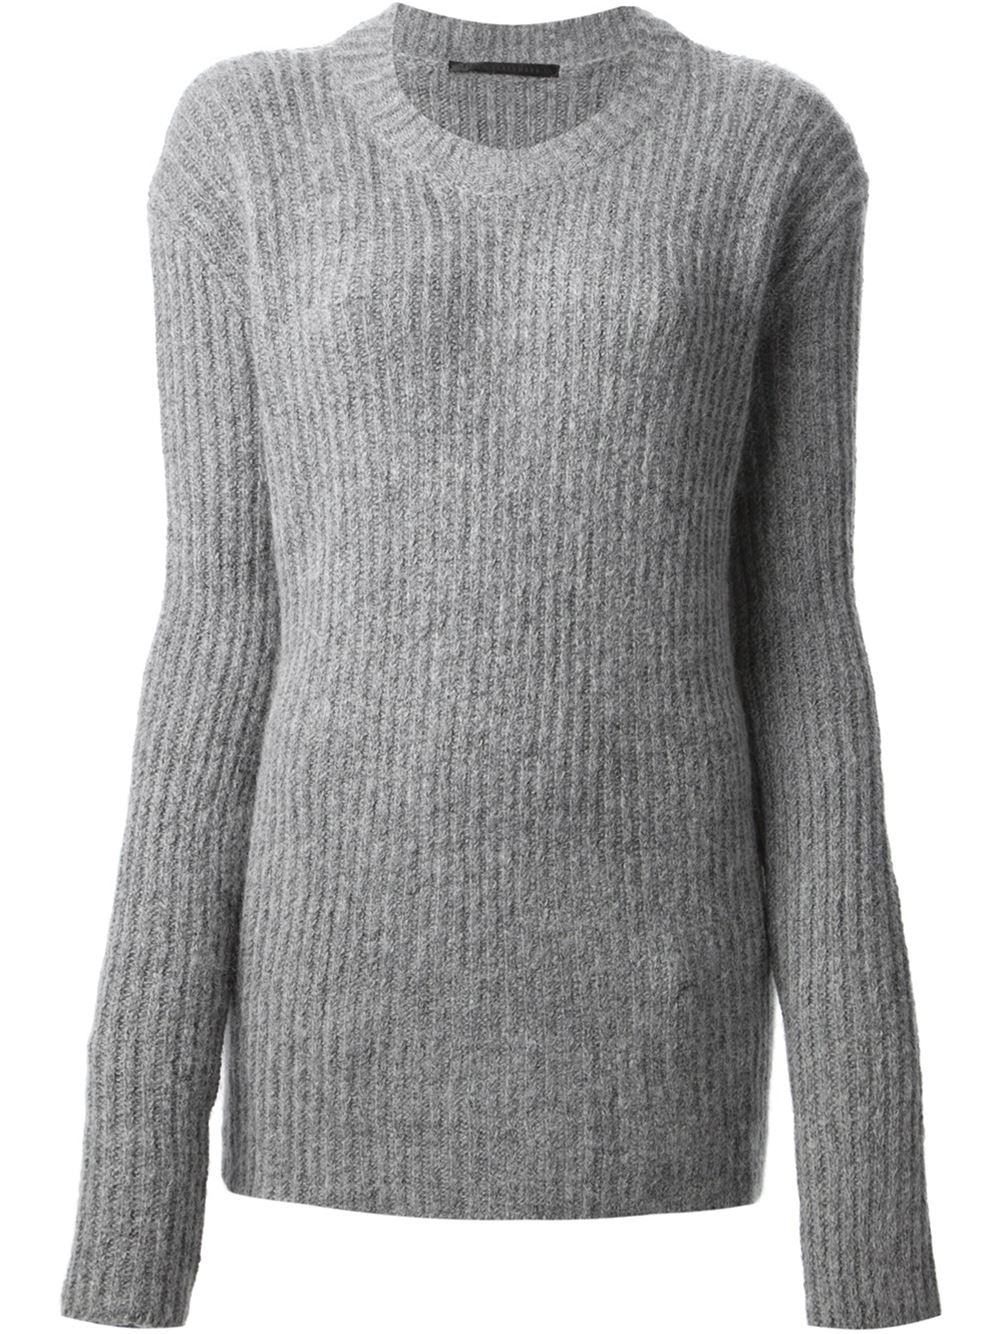 haider ackermann ribbed crew neck sweater in gray grey. Black Bedroom Furniture Sets. Home Design Ideas